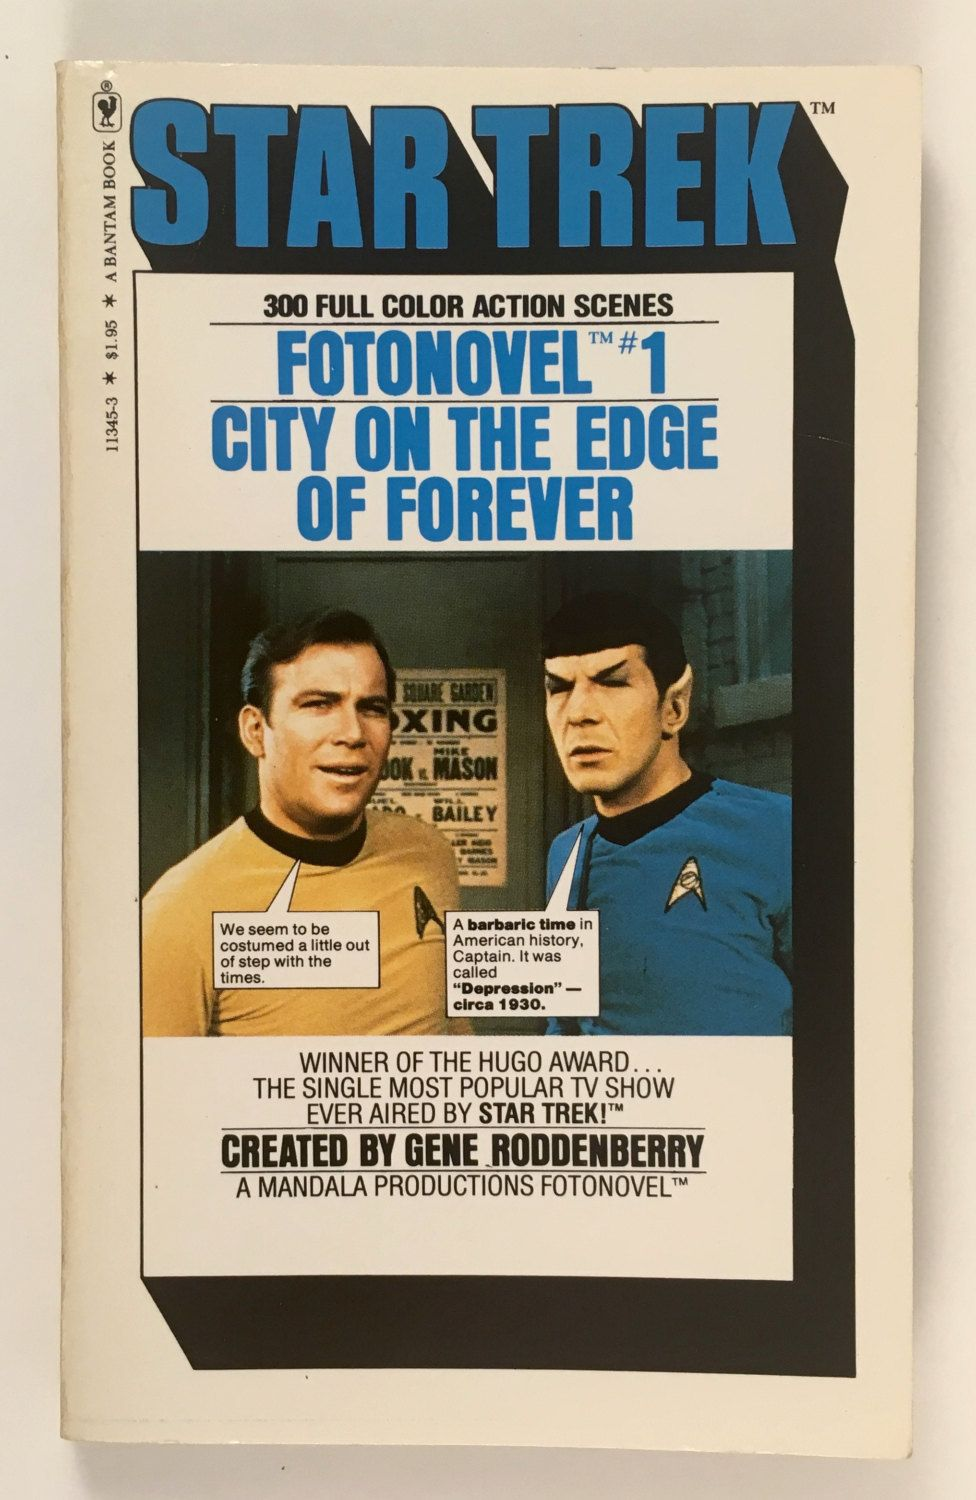 תוצאת תמונה עבור ‪star trek photo novels city on the edge of forever‬‏